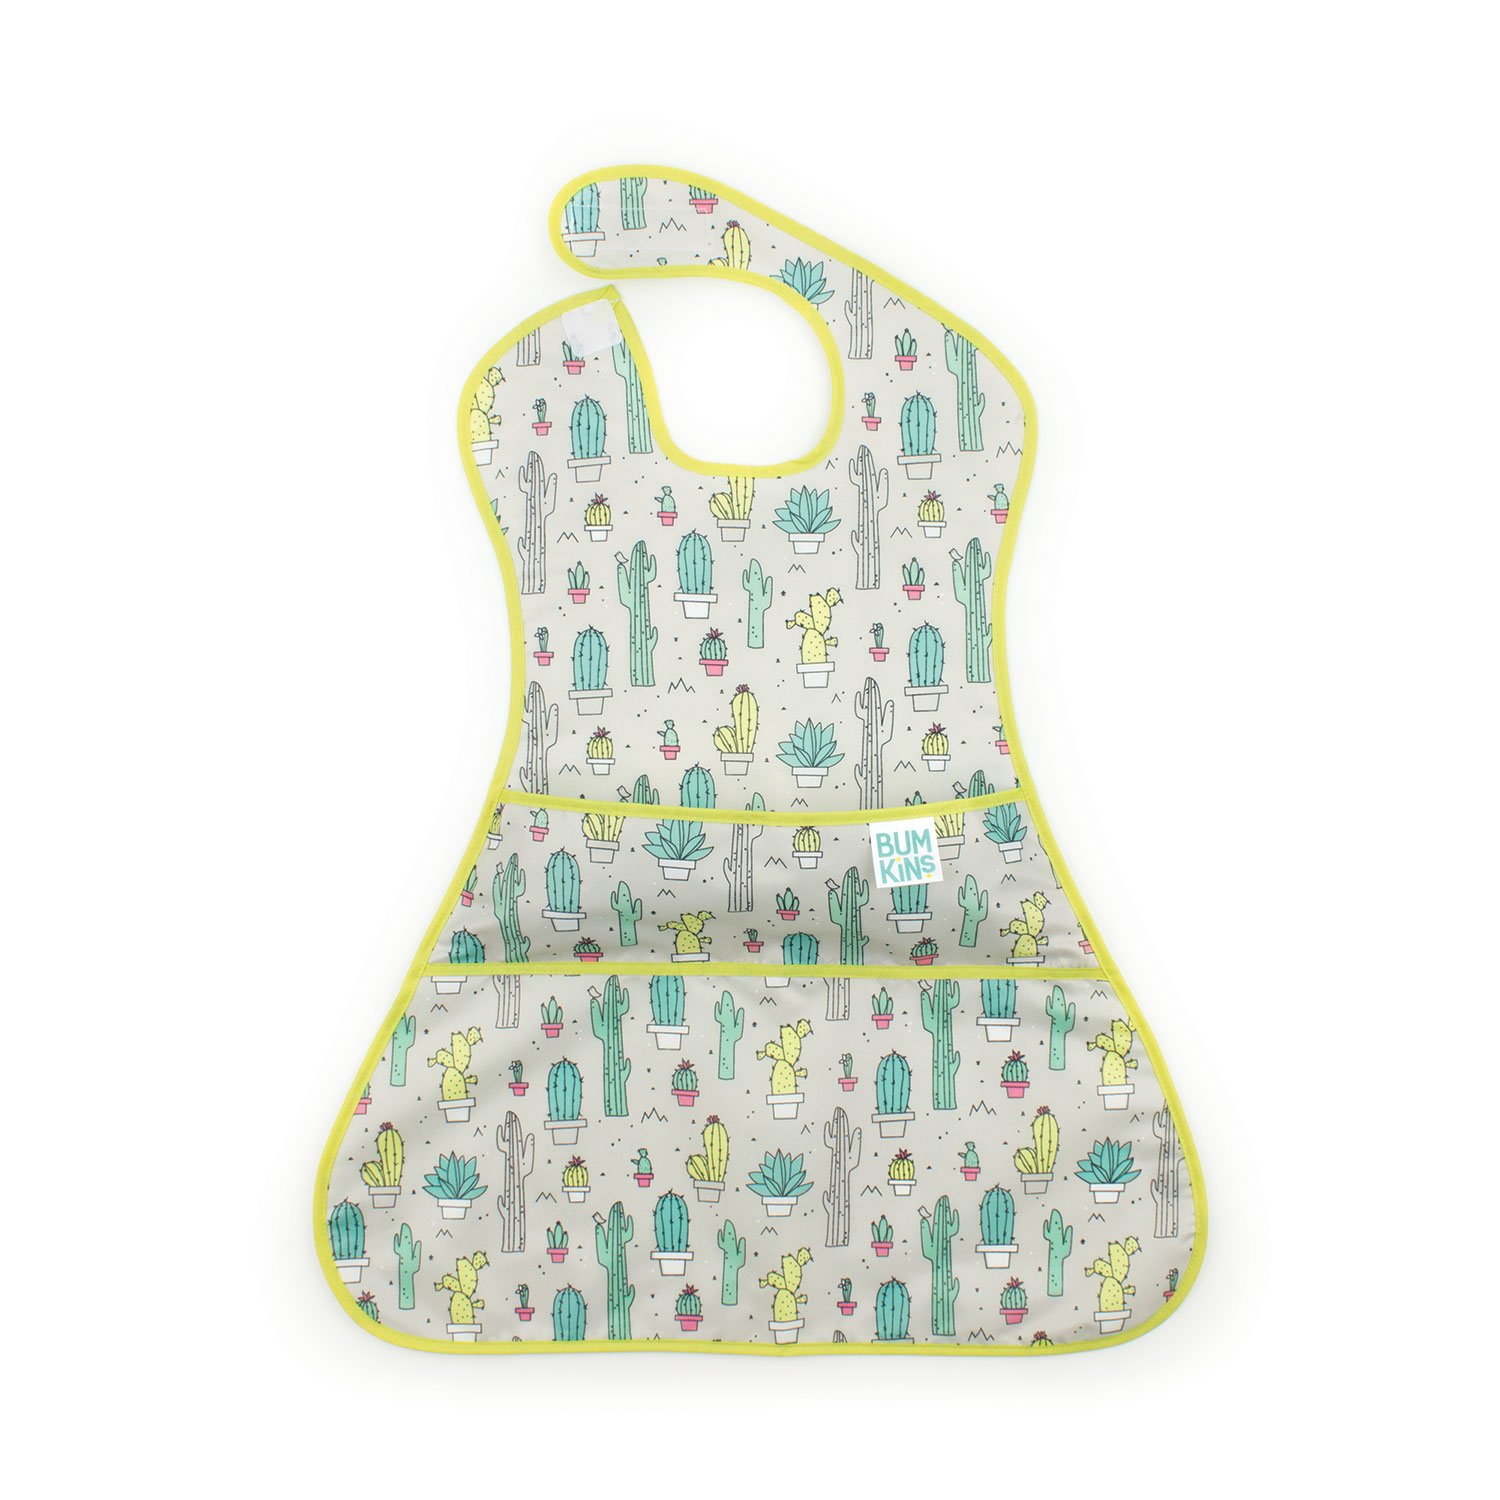 Bumkins Waterproof Super-Sized SuperBib, Cacti (6-24 Months) SS-111